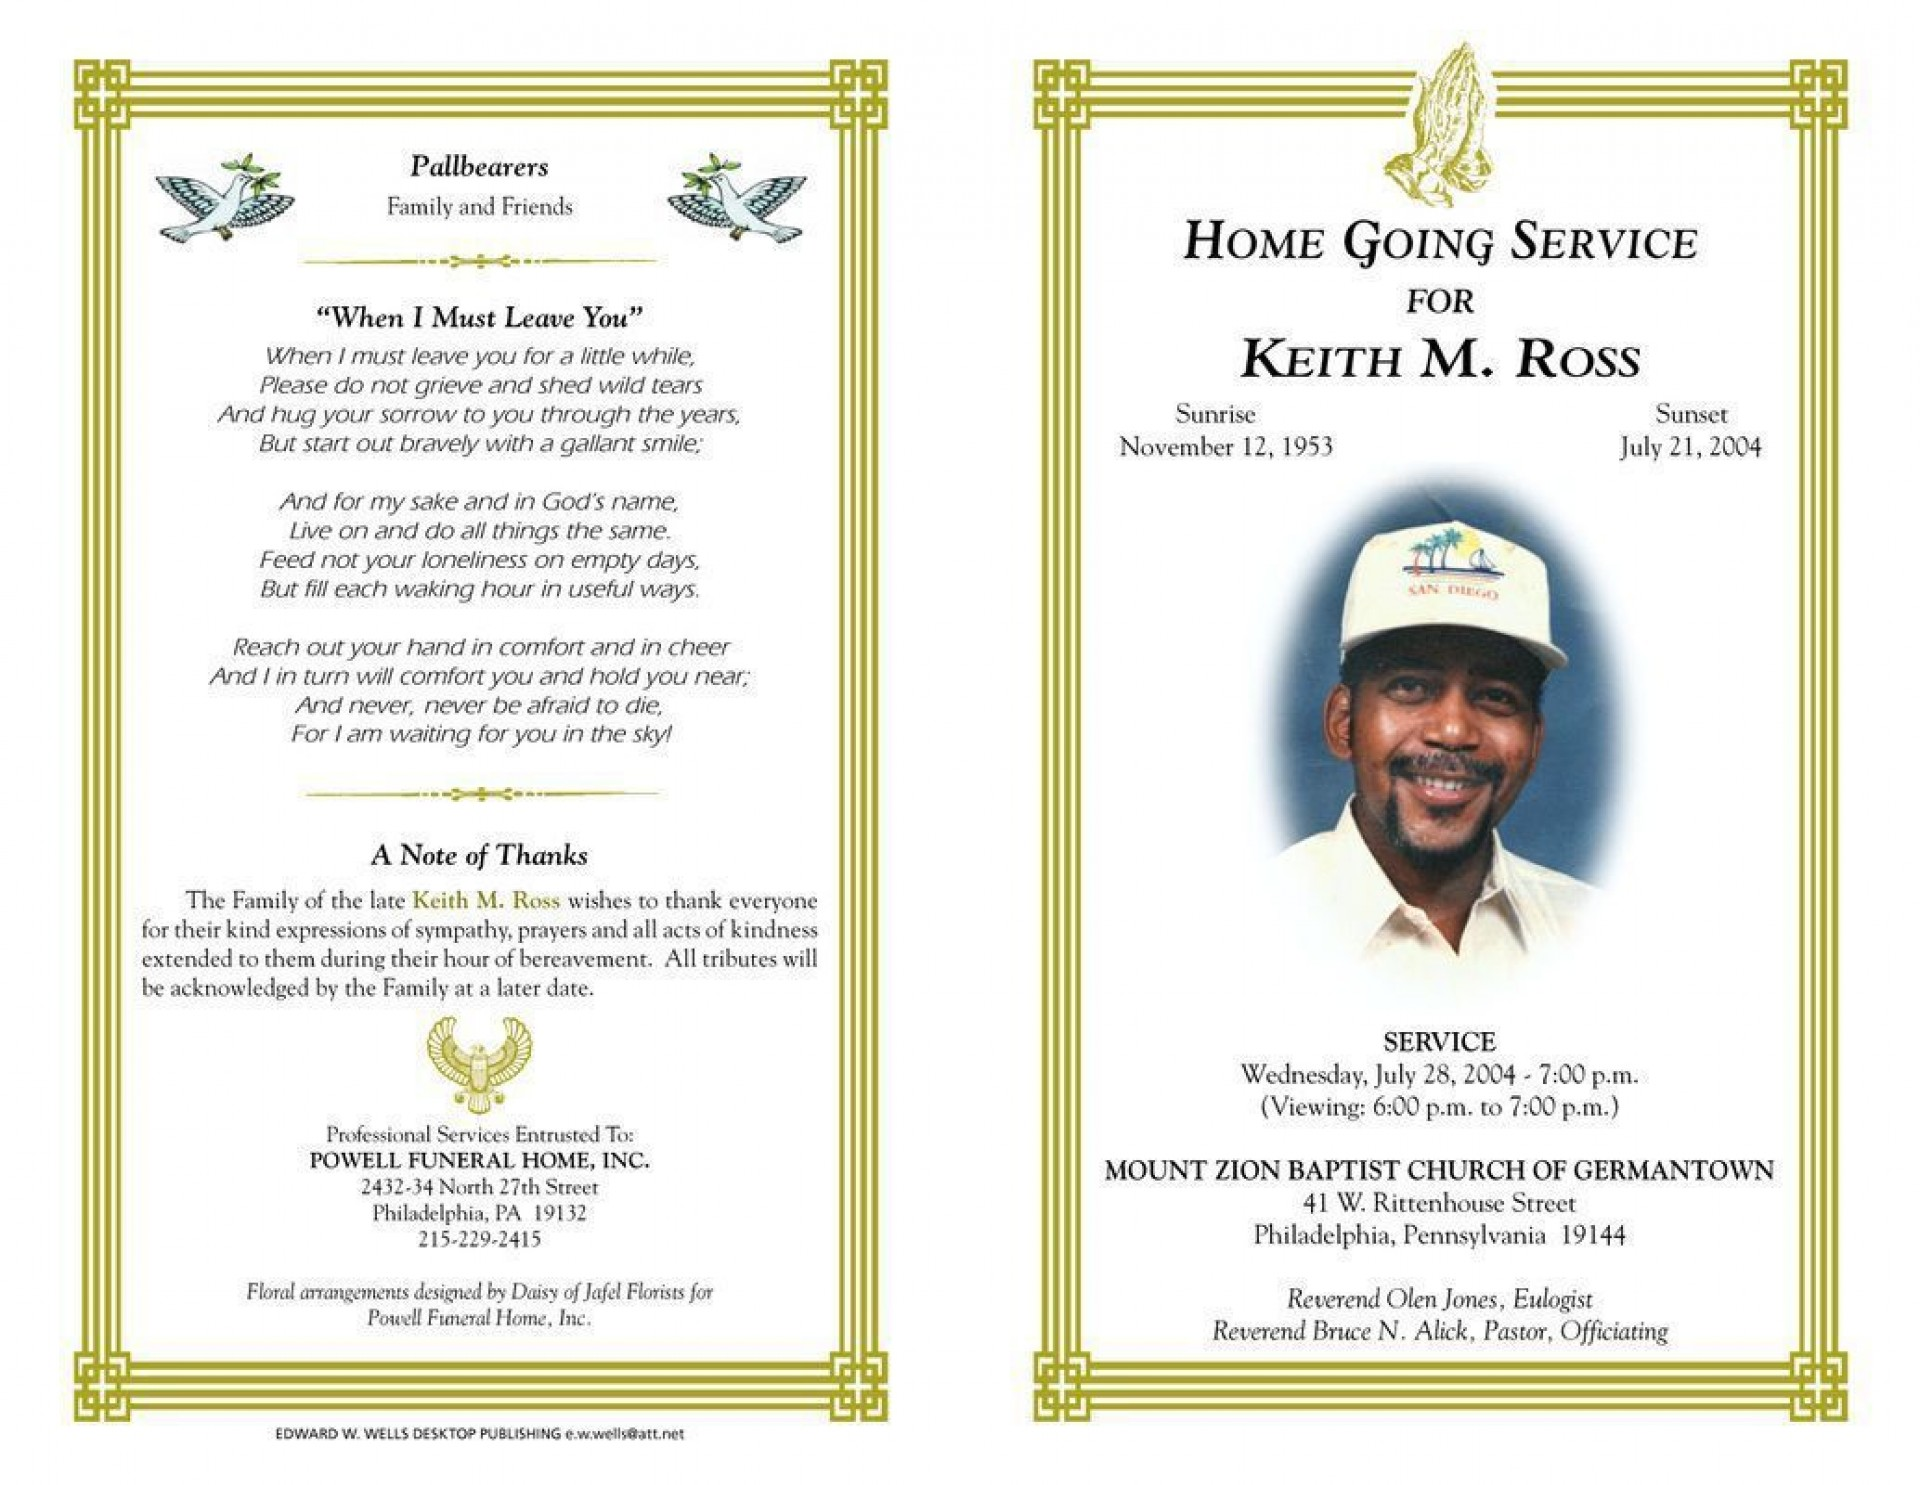 004 Staggering Template For Funeral Program Free Image  Printable Download On Word Editable Pdf1920